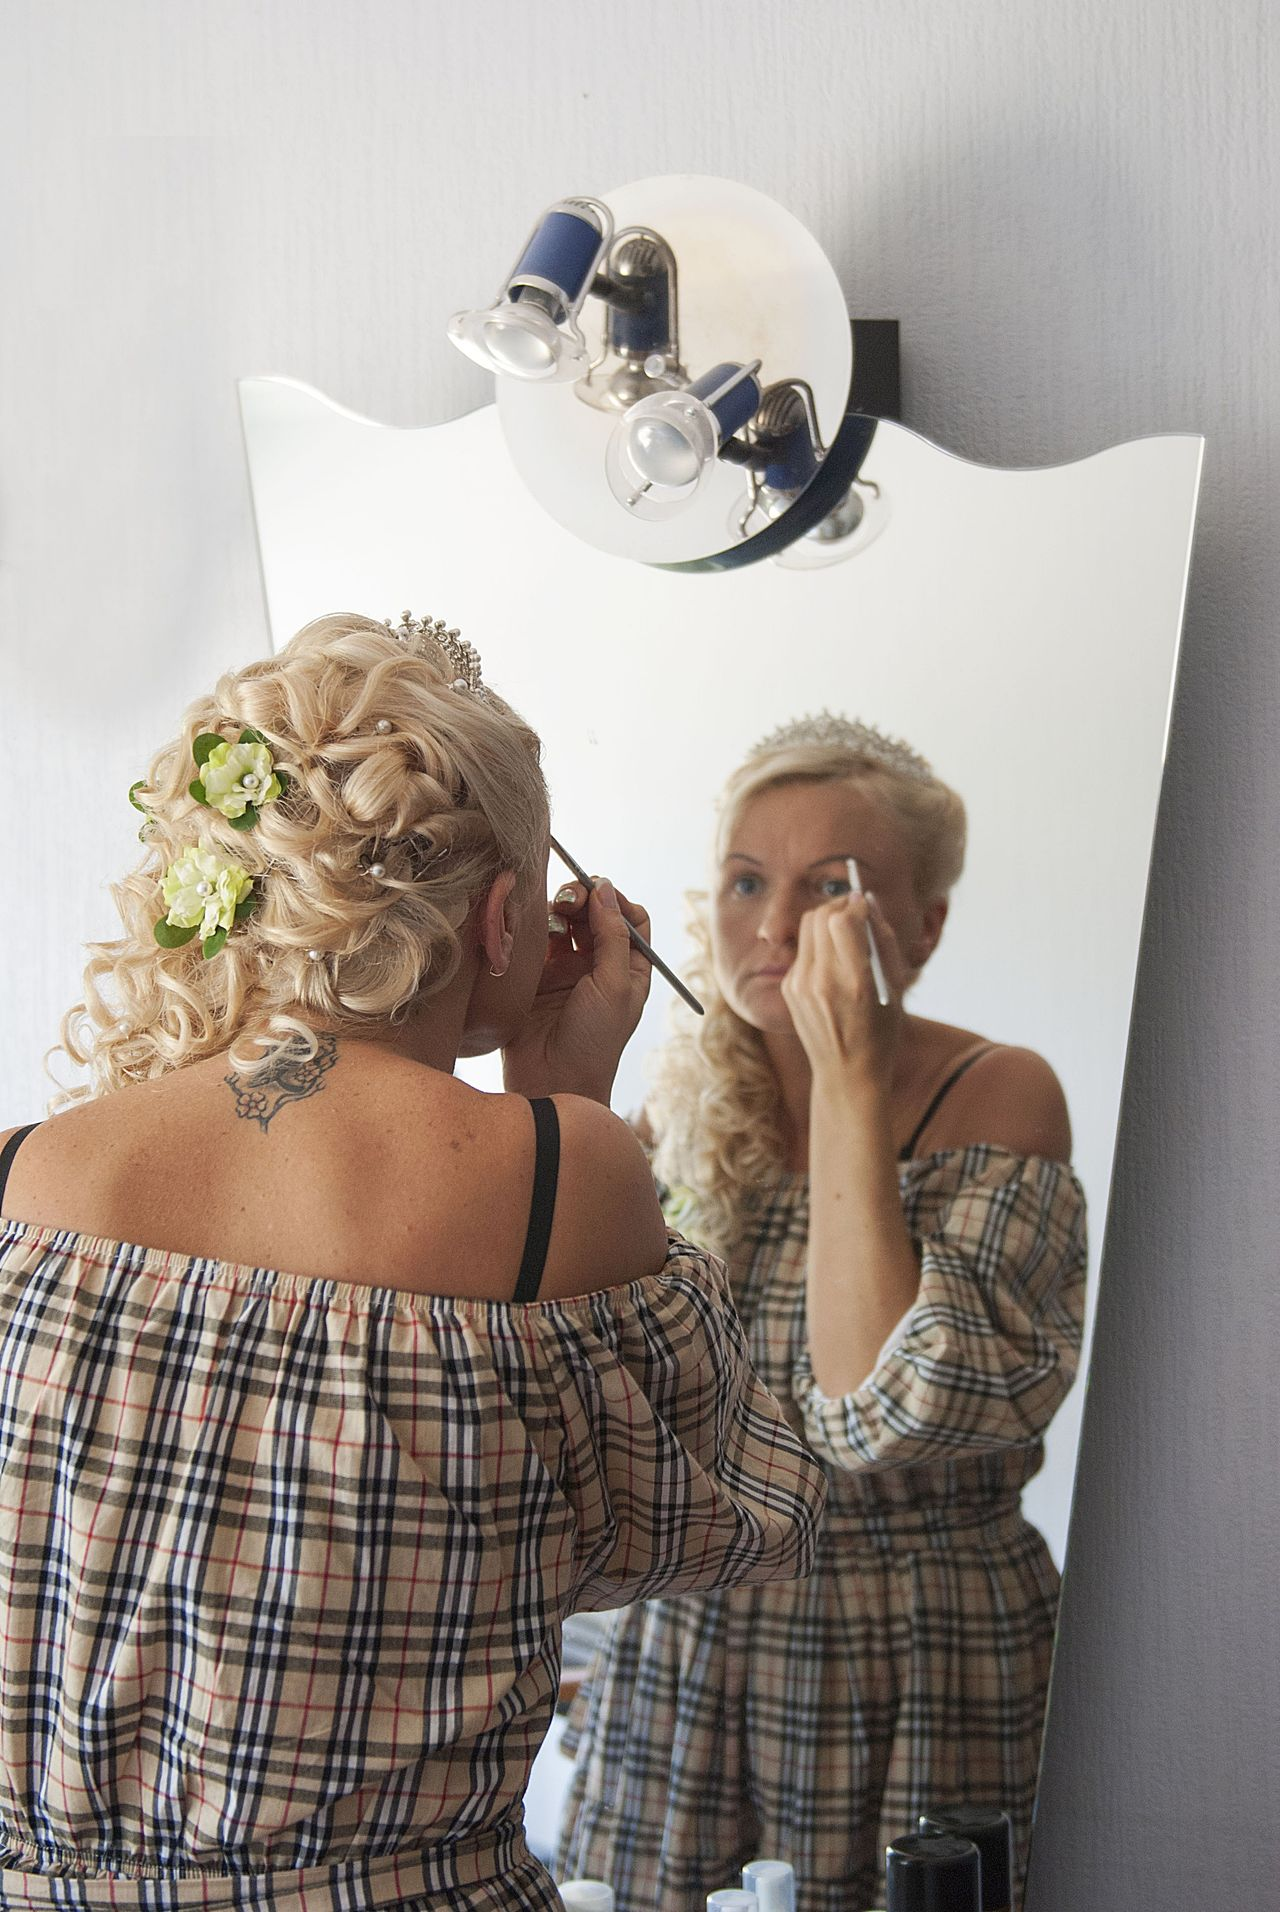 bride her wedding morning Adult Adults Only Background Blond Hair Bride Celebration Day Domestic Room Enjoyment Erotic_model Event Hairstyle Indoors  Lamps Lifestyles Makeup Mirror Morning Reflection Sexygirl Tatoo Tatoostyle Wedding